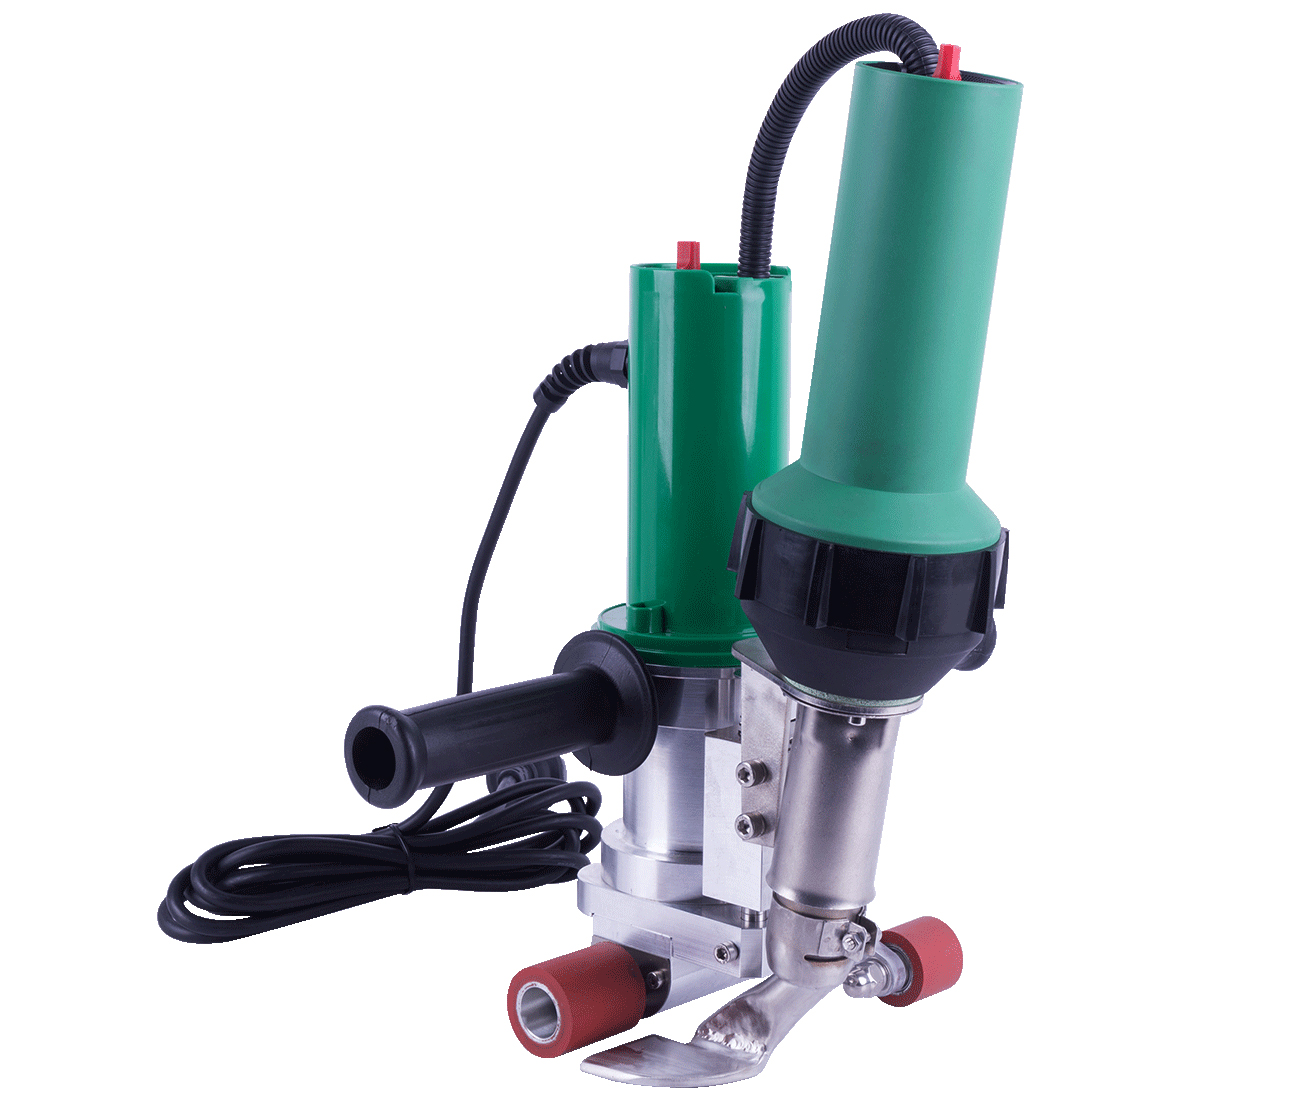 portable hot air gun with pvc